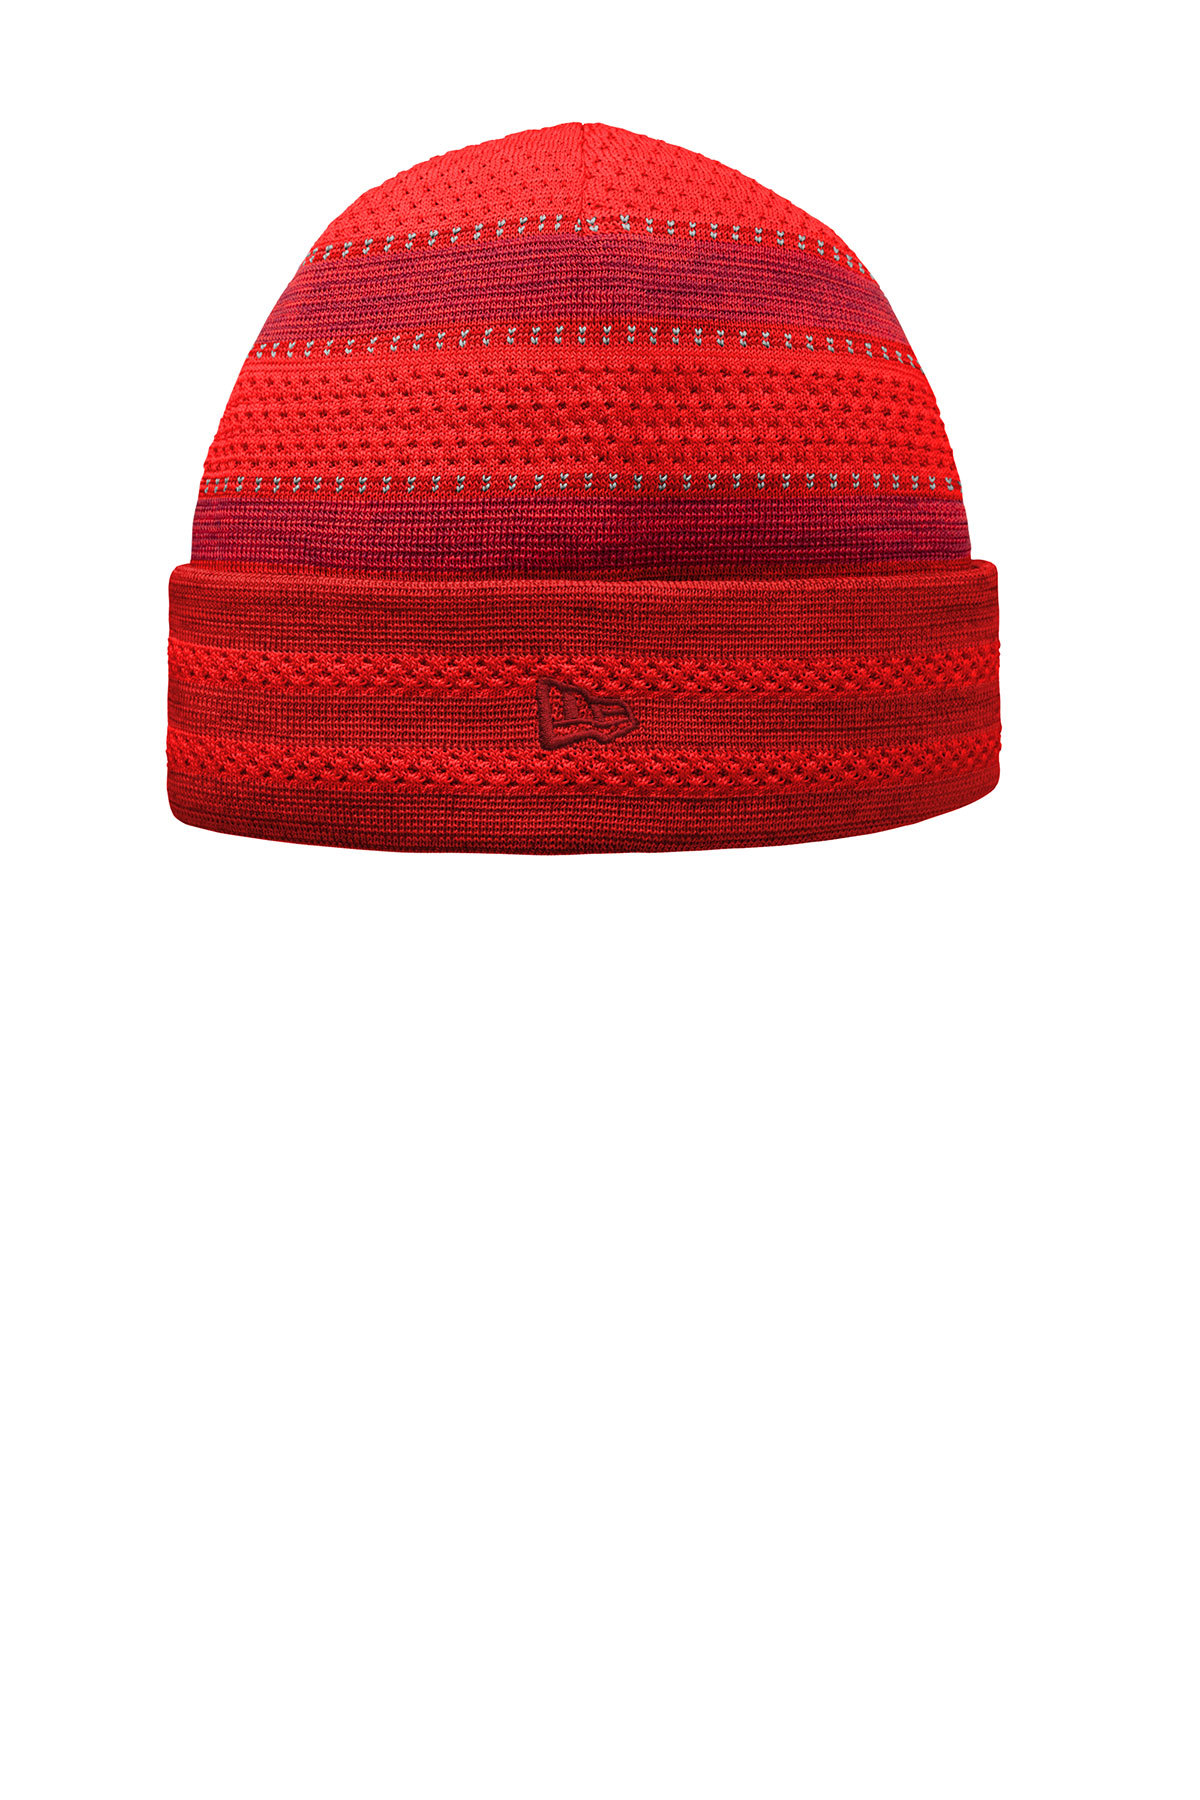 New Era NE906 - On-Field Knit Beanie